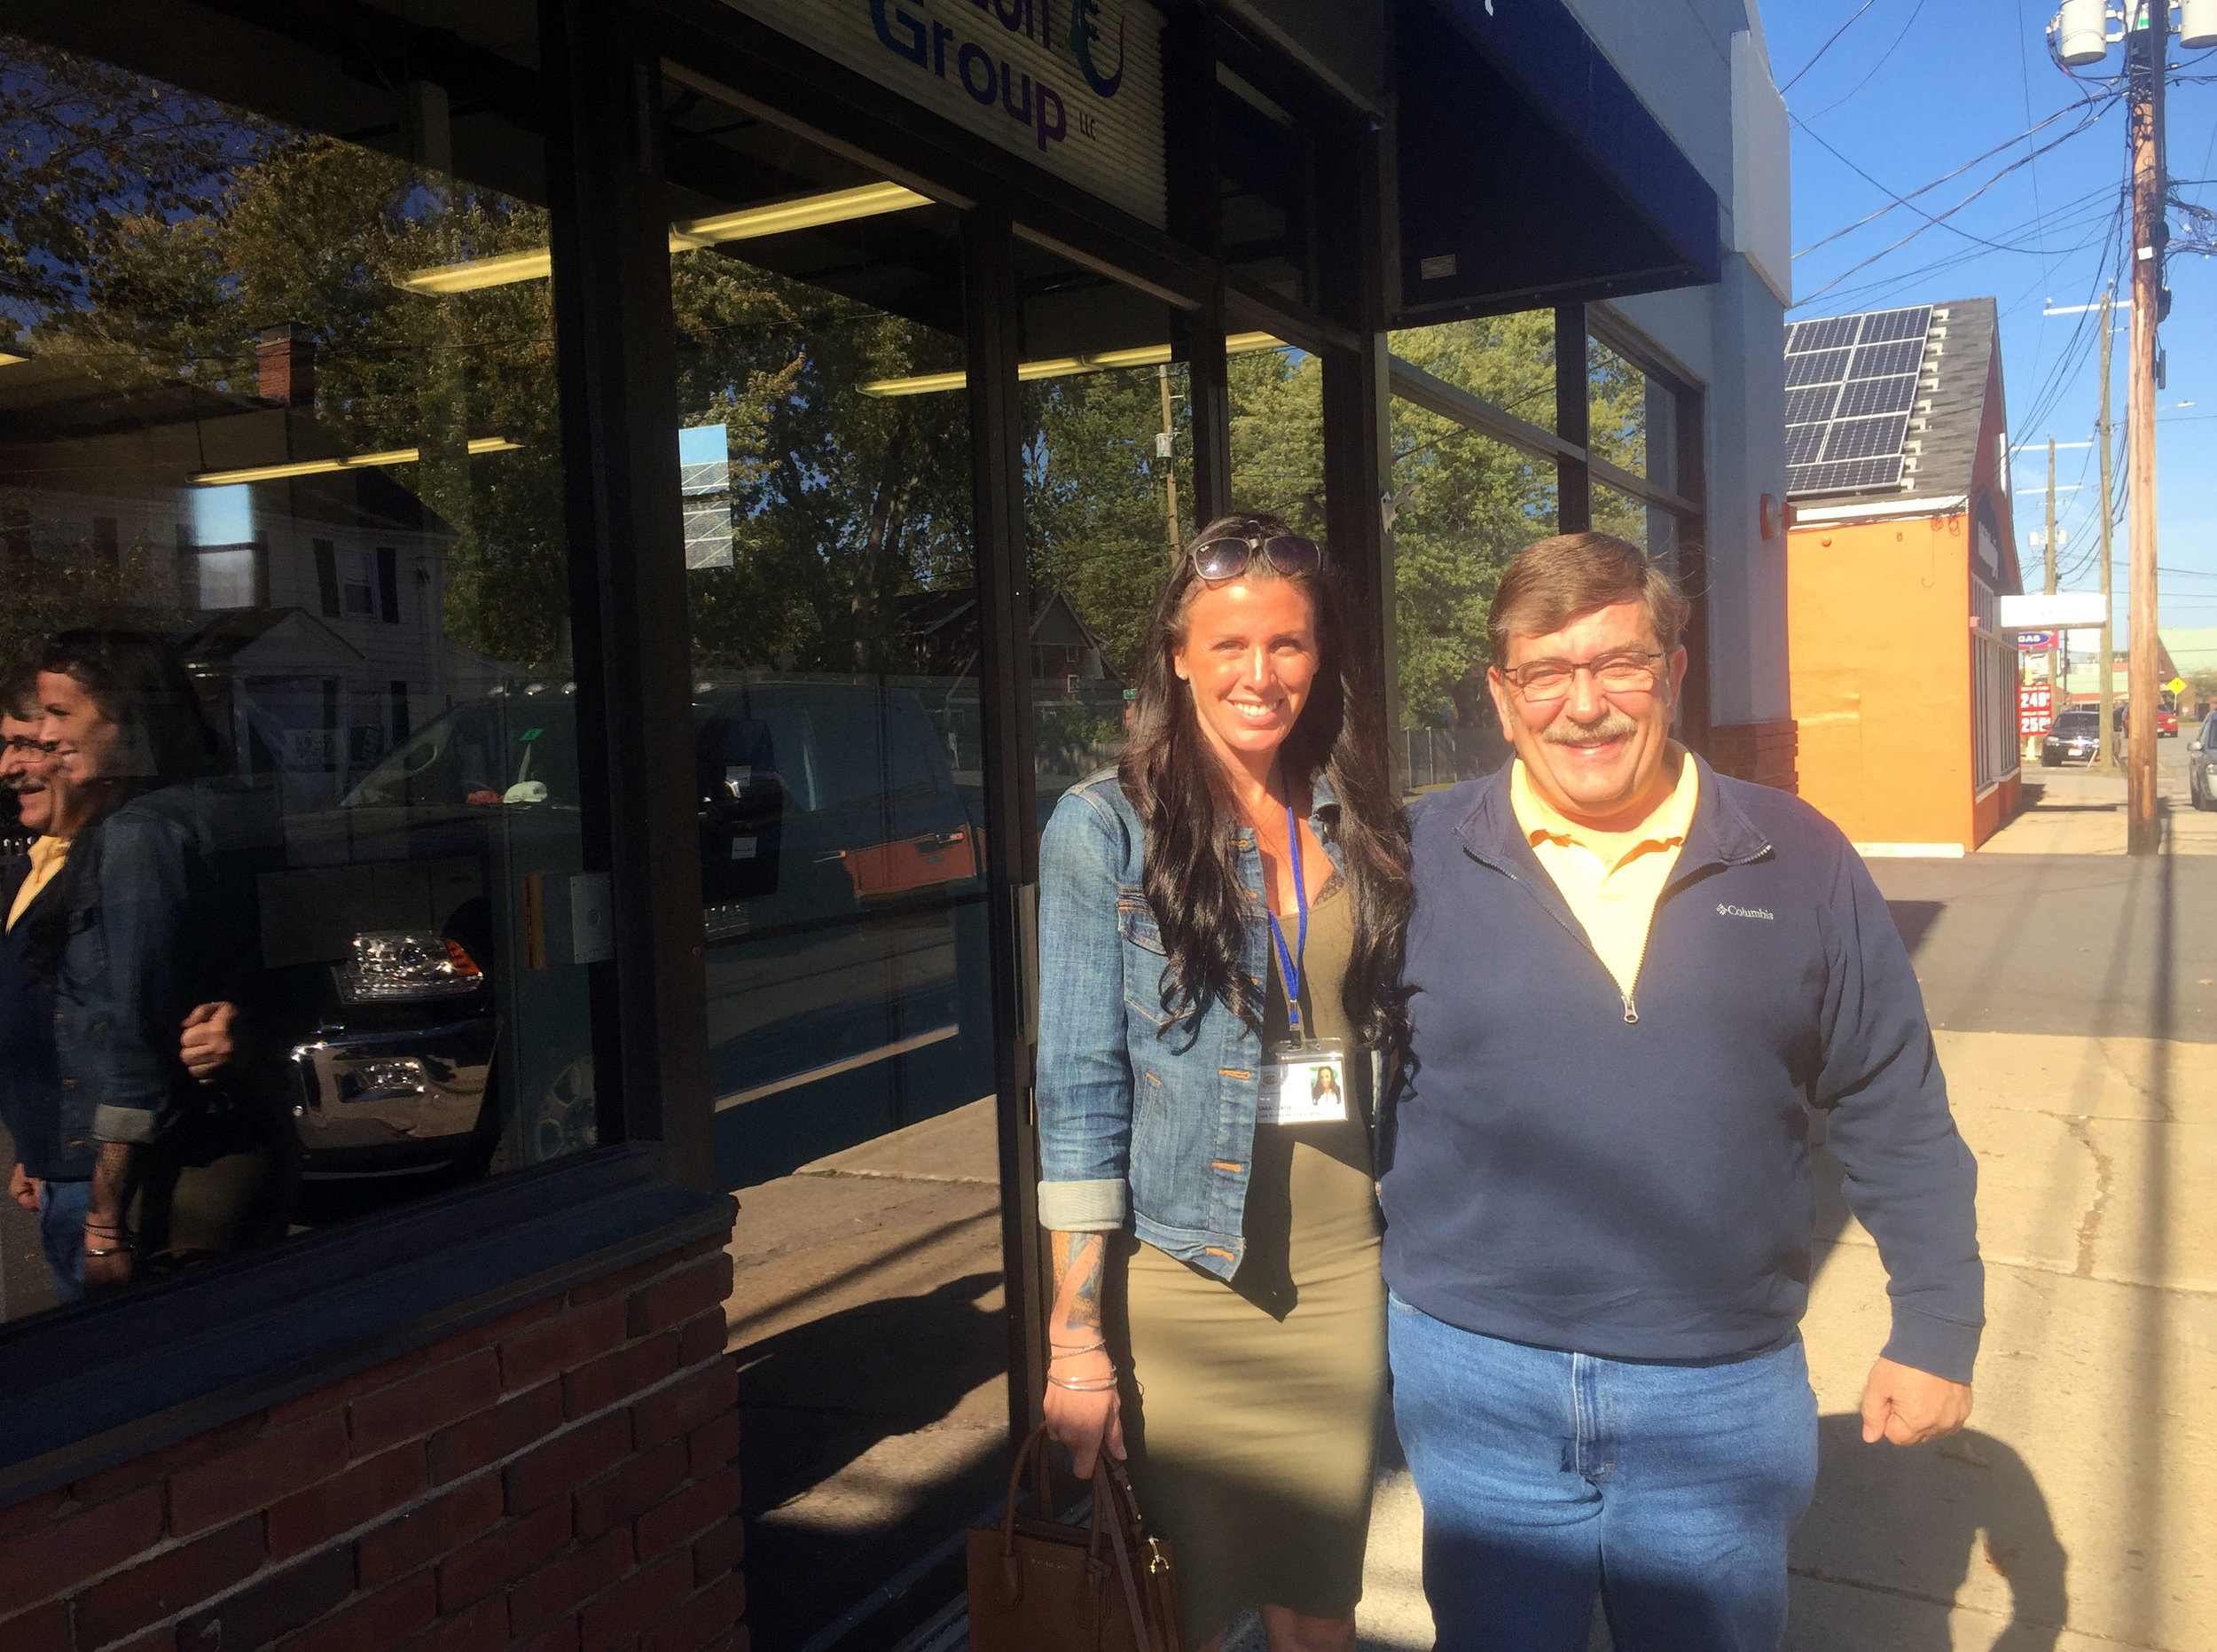 Sarah Curtis and Dana Lariviere outside the call center Chameleon Group in Portsmouth.  By PAIGE SUTHERLAND/NHPR